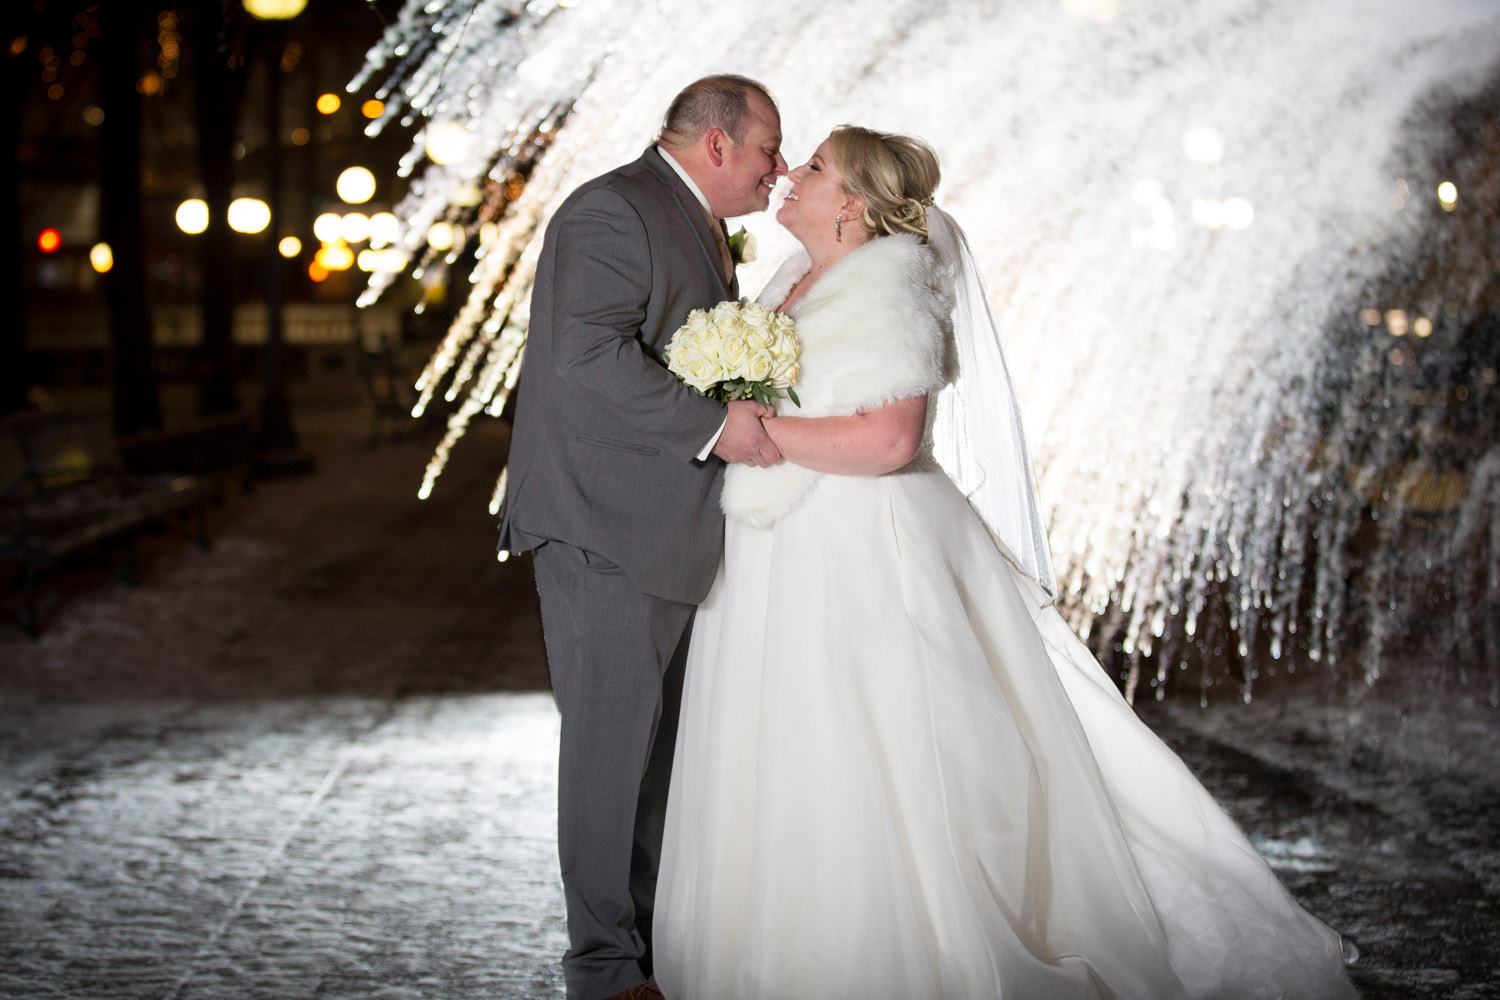 01-winter-wedding-night-photography-christmas-time-near-years-eve-wedding-NYE-frozen-water-rice-park-st-paul-hotel-minnesota-mahnen-photography.jpg